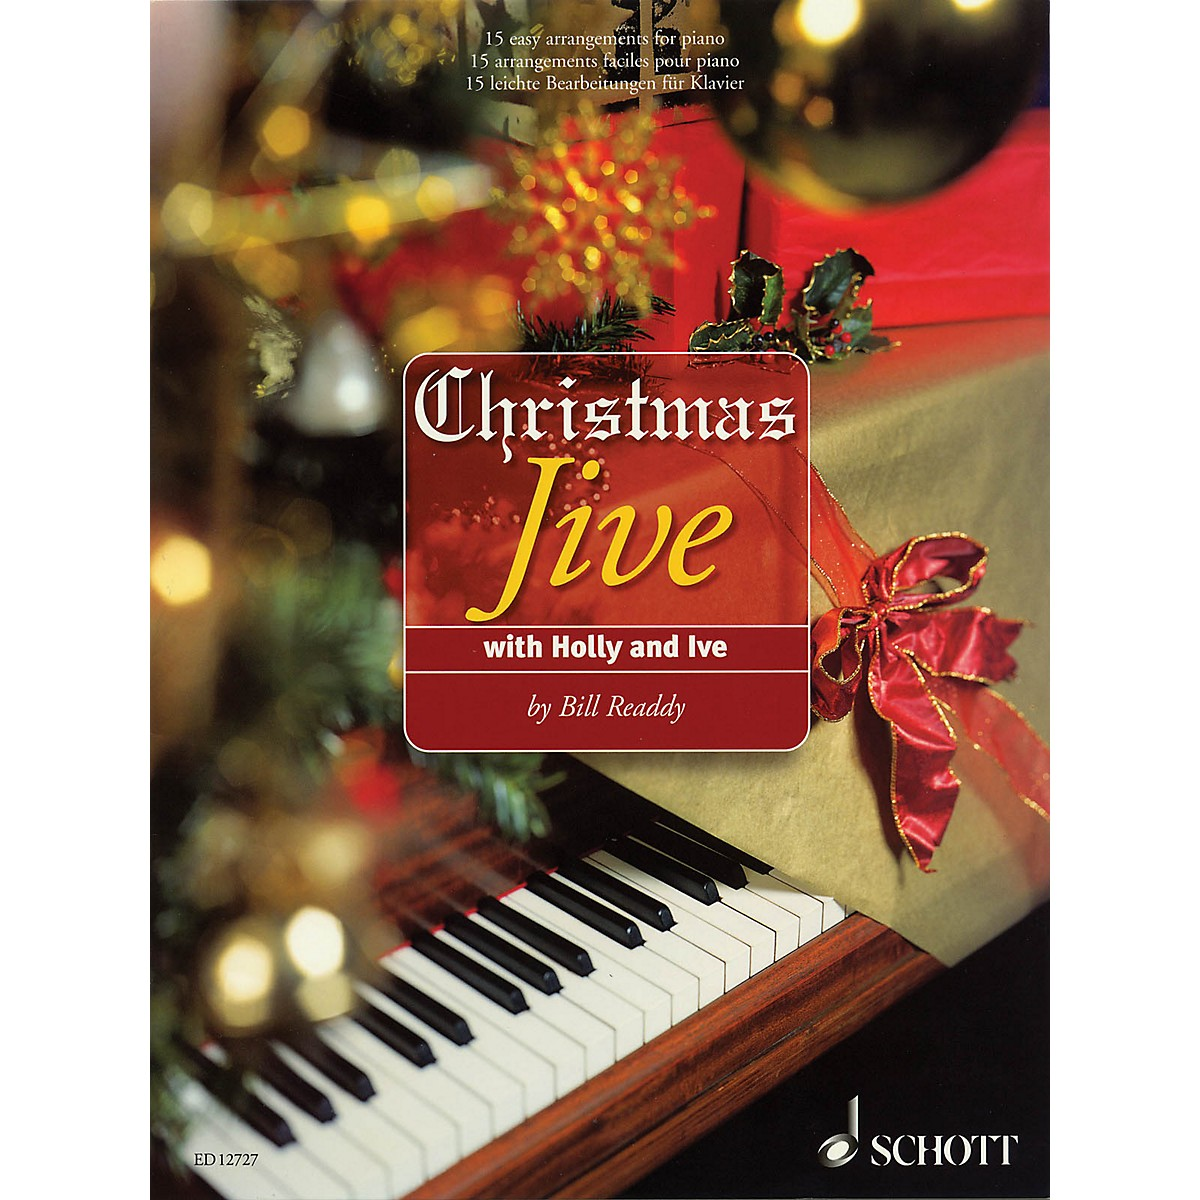 Schott Christmas Jive with Holly and Ive (15 Easy Arrangements for Piano) Schott Series